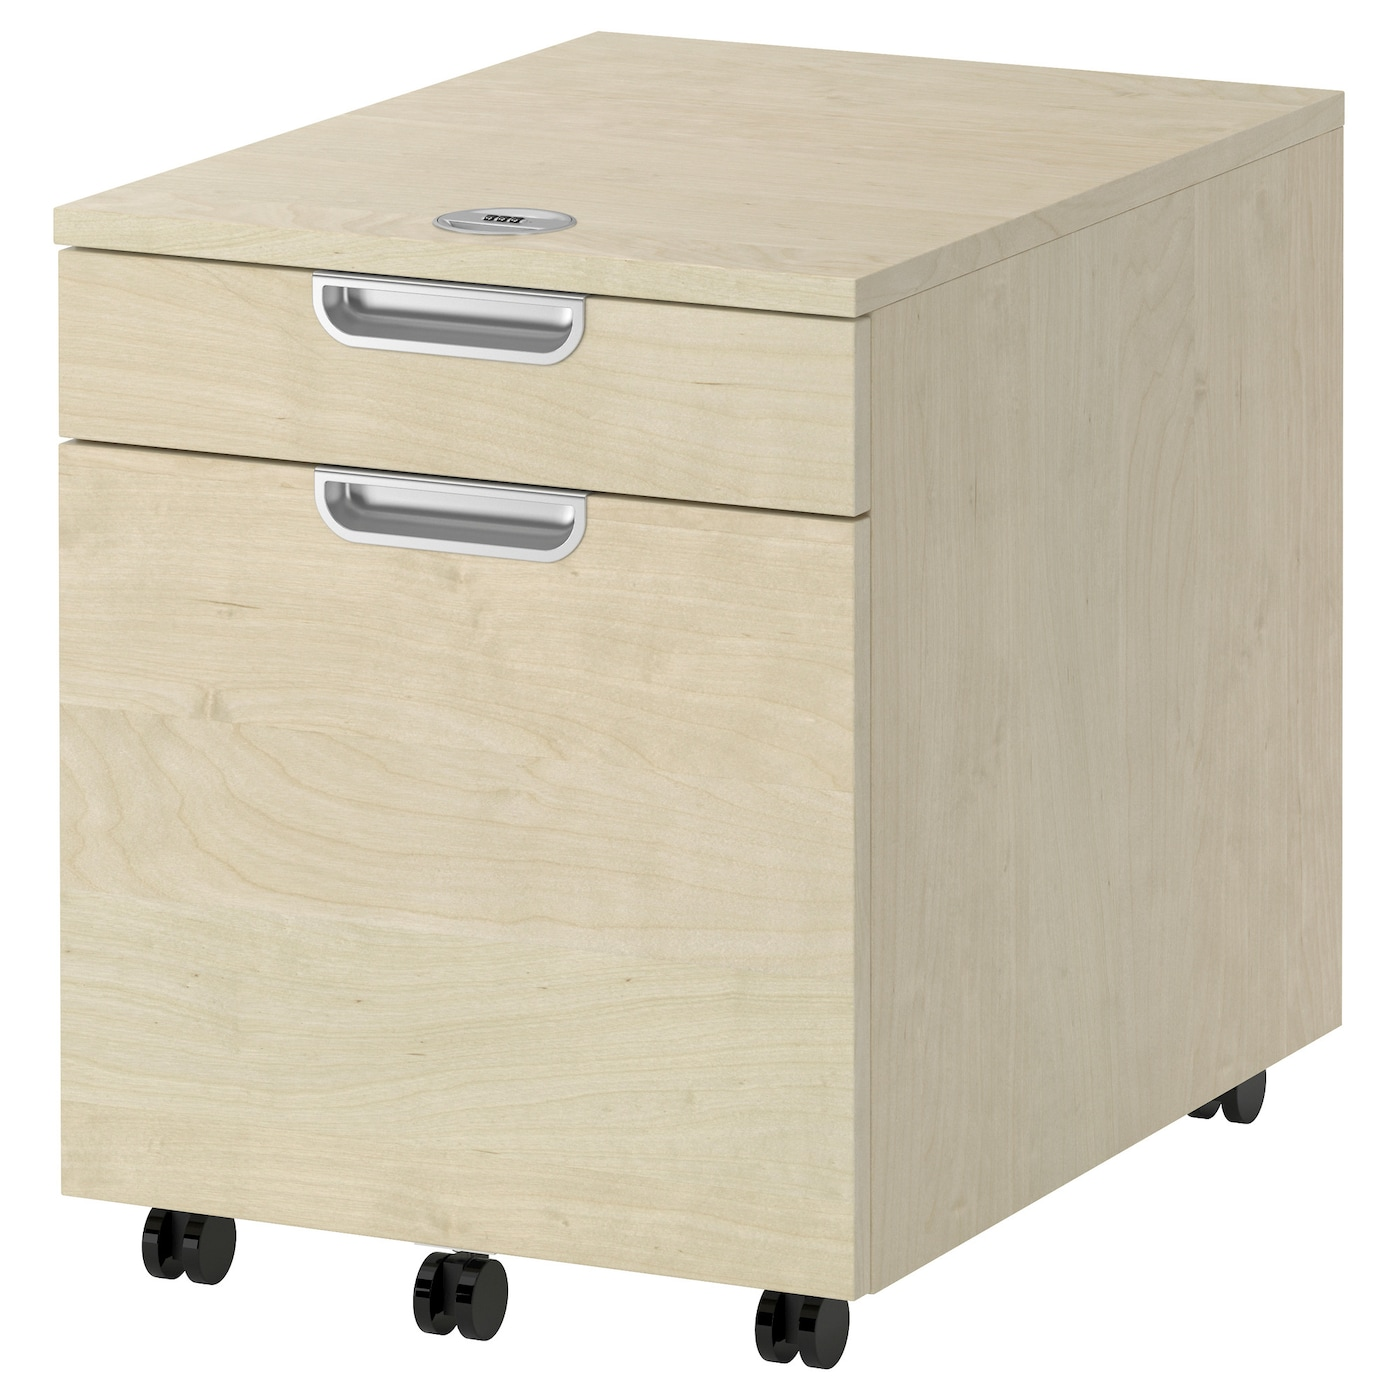 galant drawer unit with drop file storage birch veneer 45 x 55 cm ikea. Black Bedroom Furniture Sets. Home Design Ideas